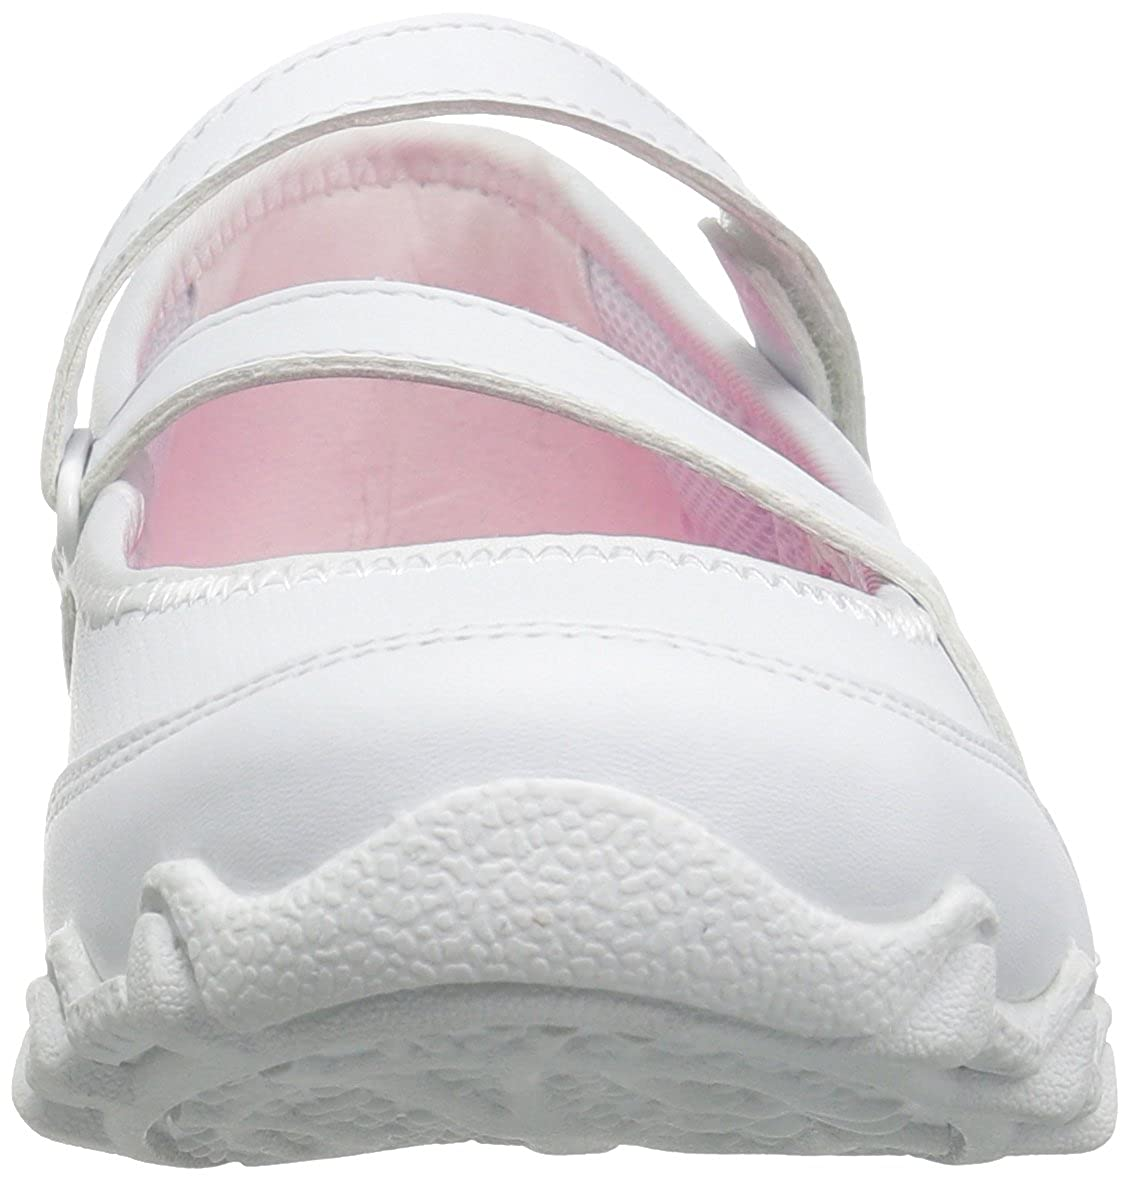 Skechers Kids Girls Kids' Biker II-Campus Craze Mary Jane Jane Jane 4263c4